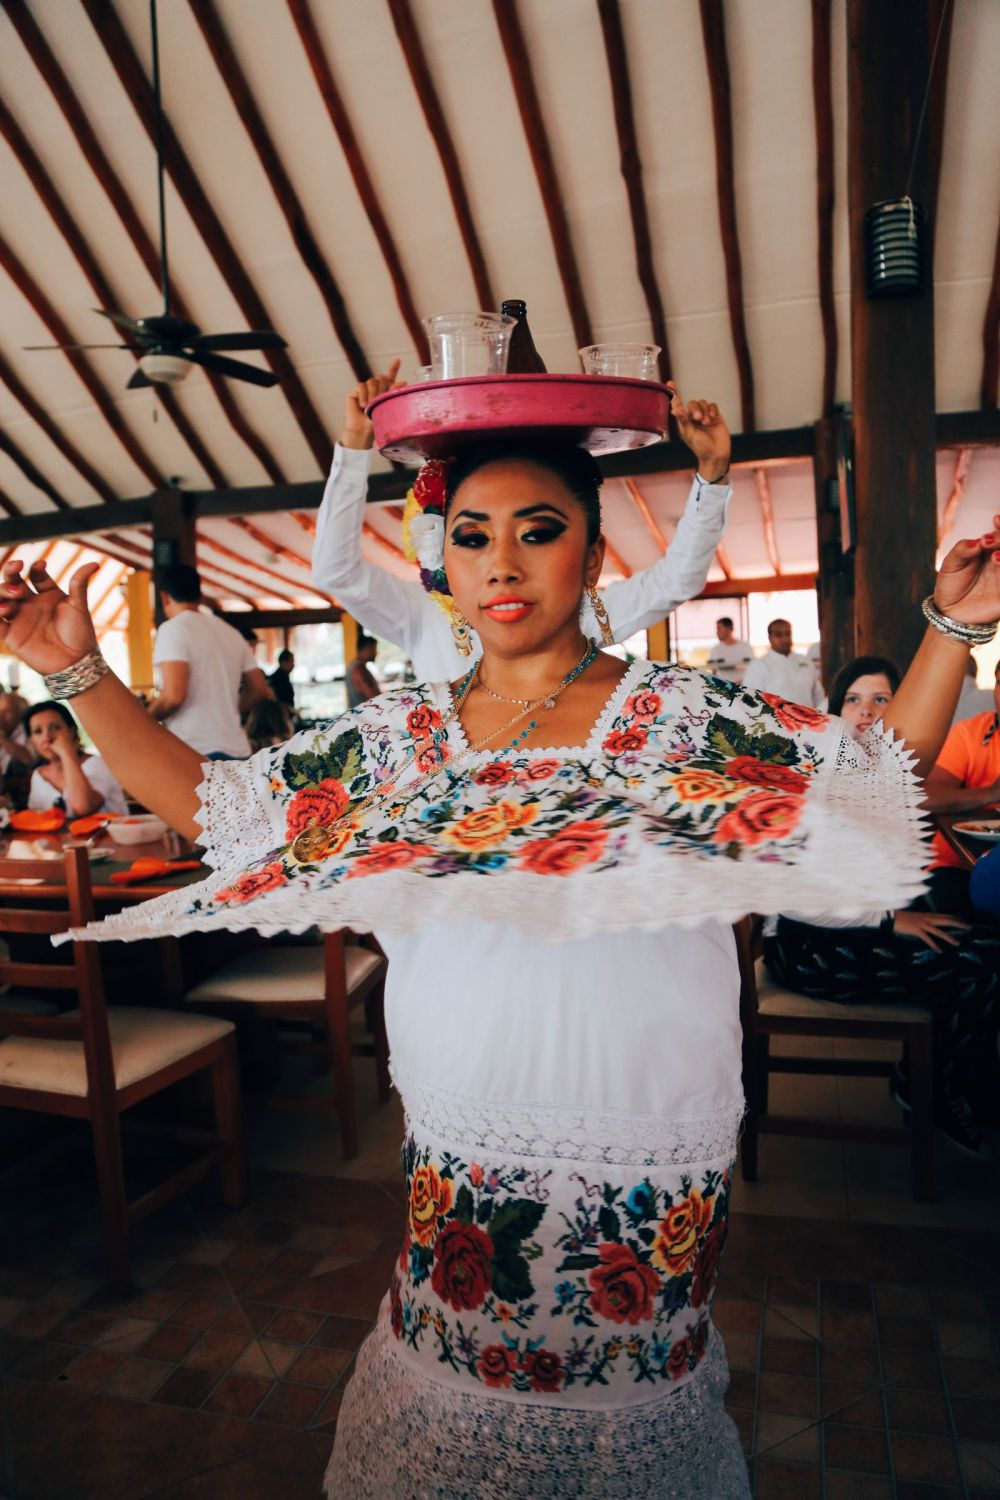 What Is It Like To Visit Mexico For The First Time? (27)